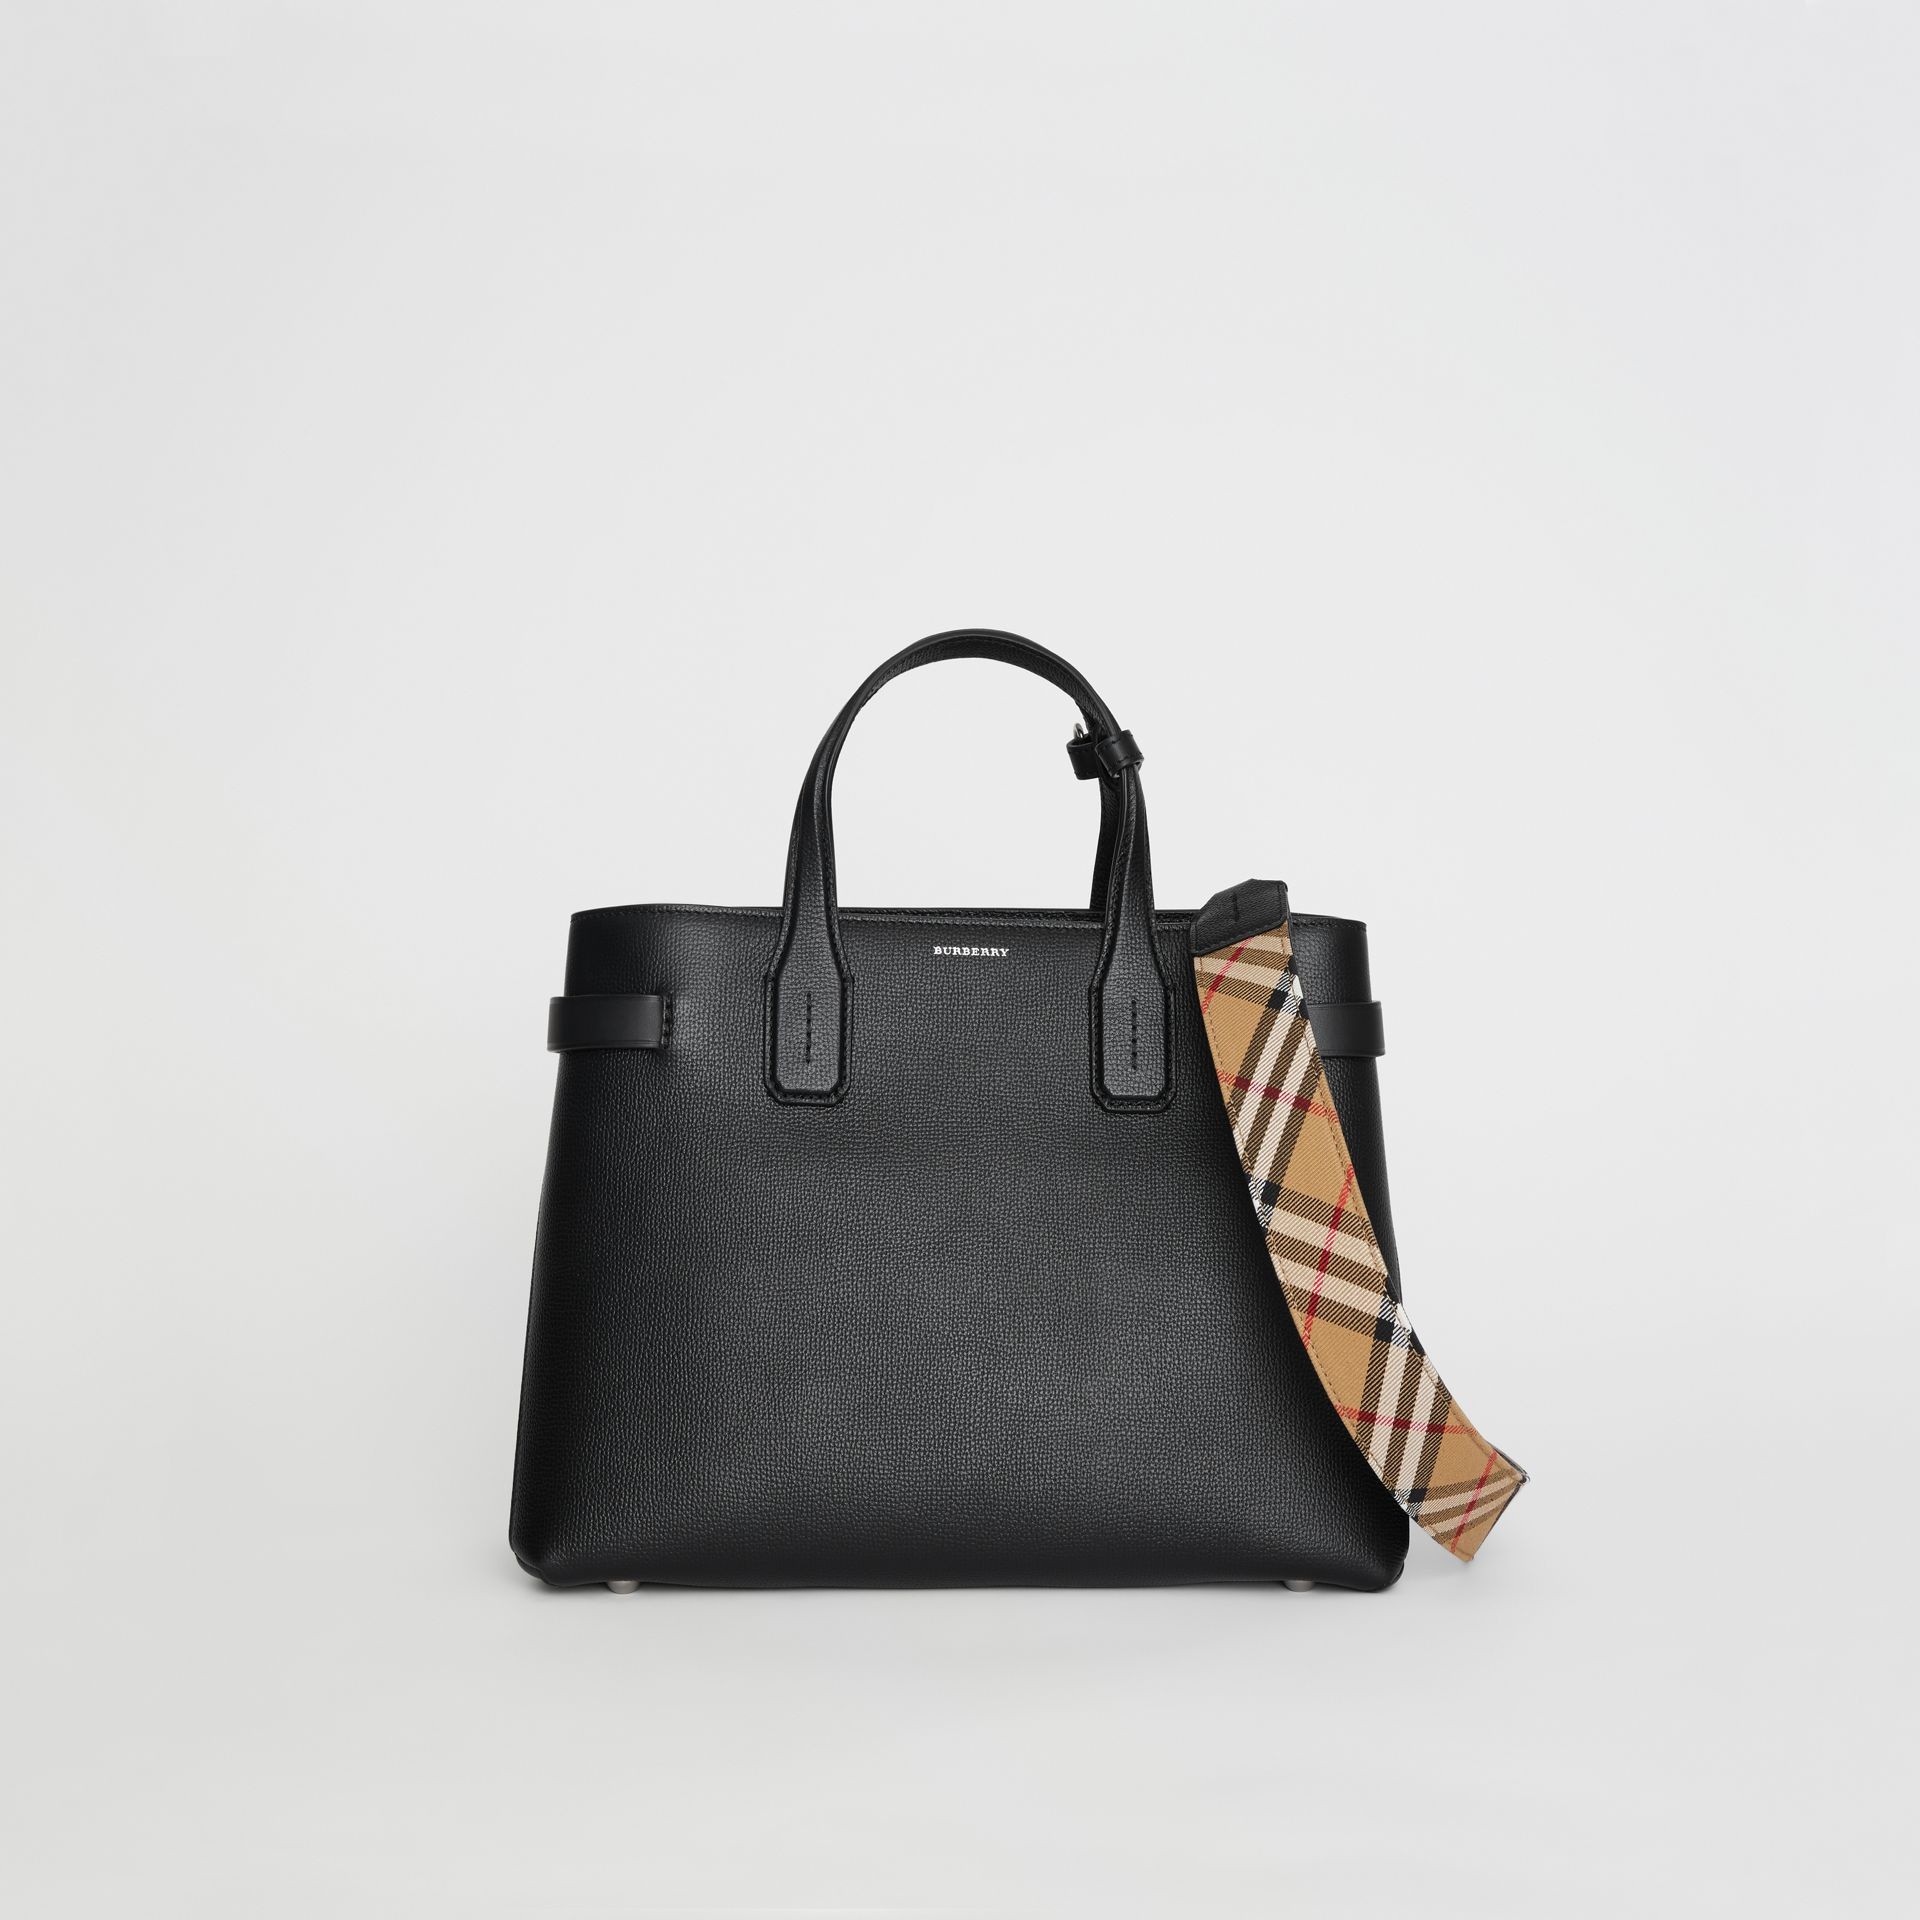 Sac The Banner moyen en cuir et motif Vintage check (Noir) - Femme | Burberry - photo de la galerie 0